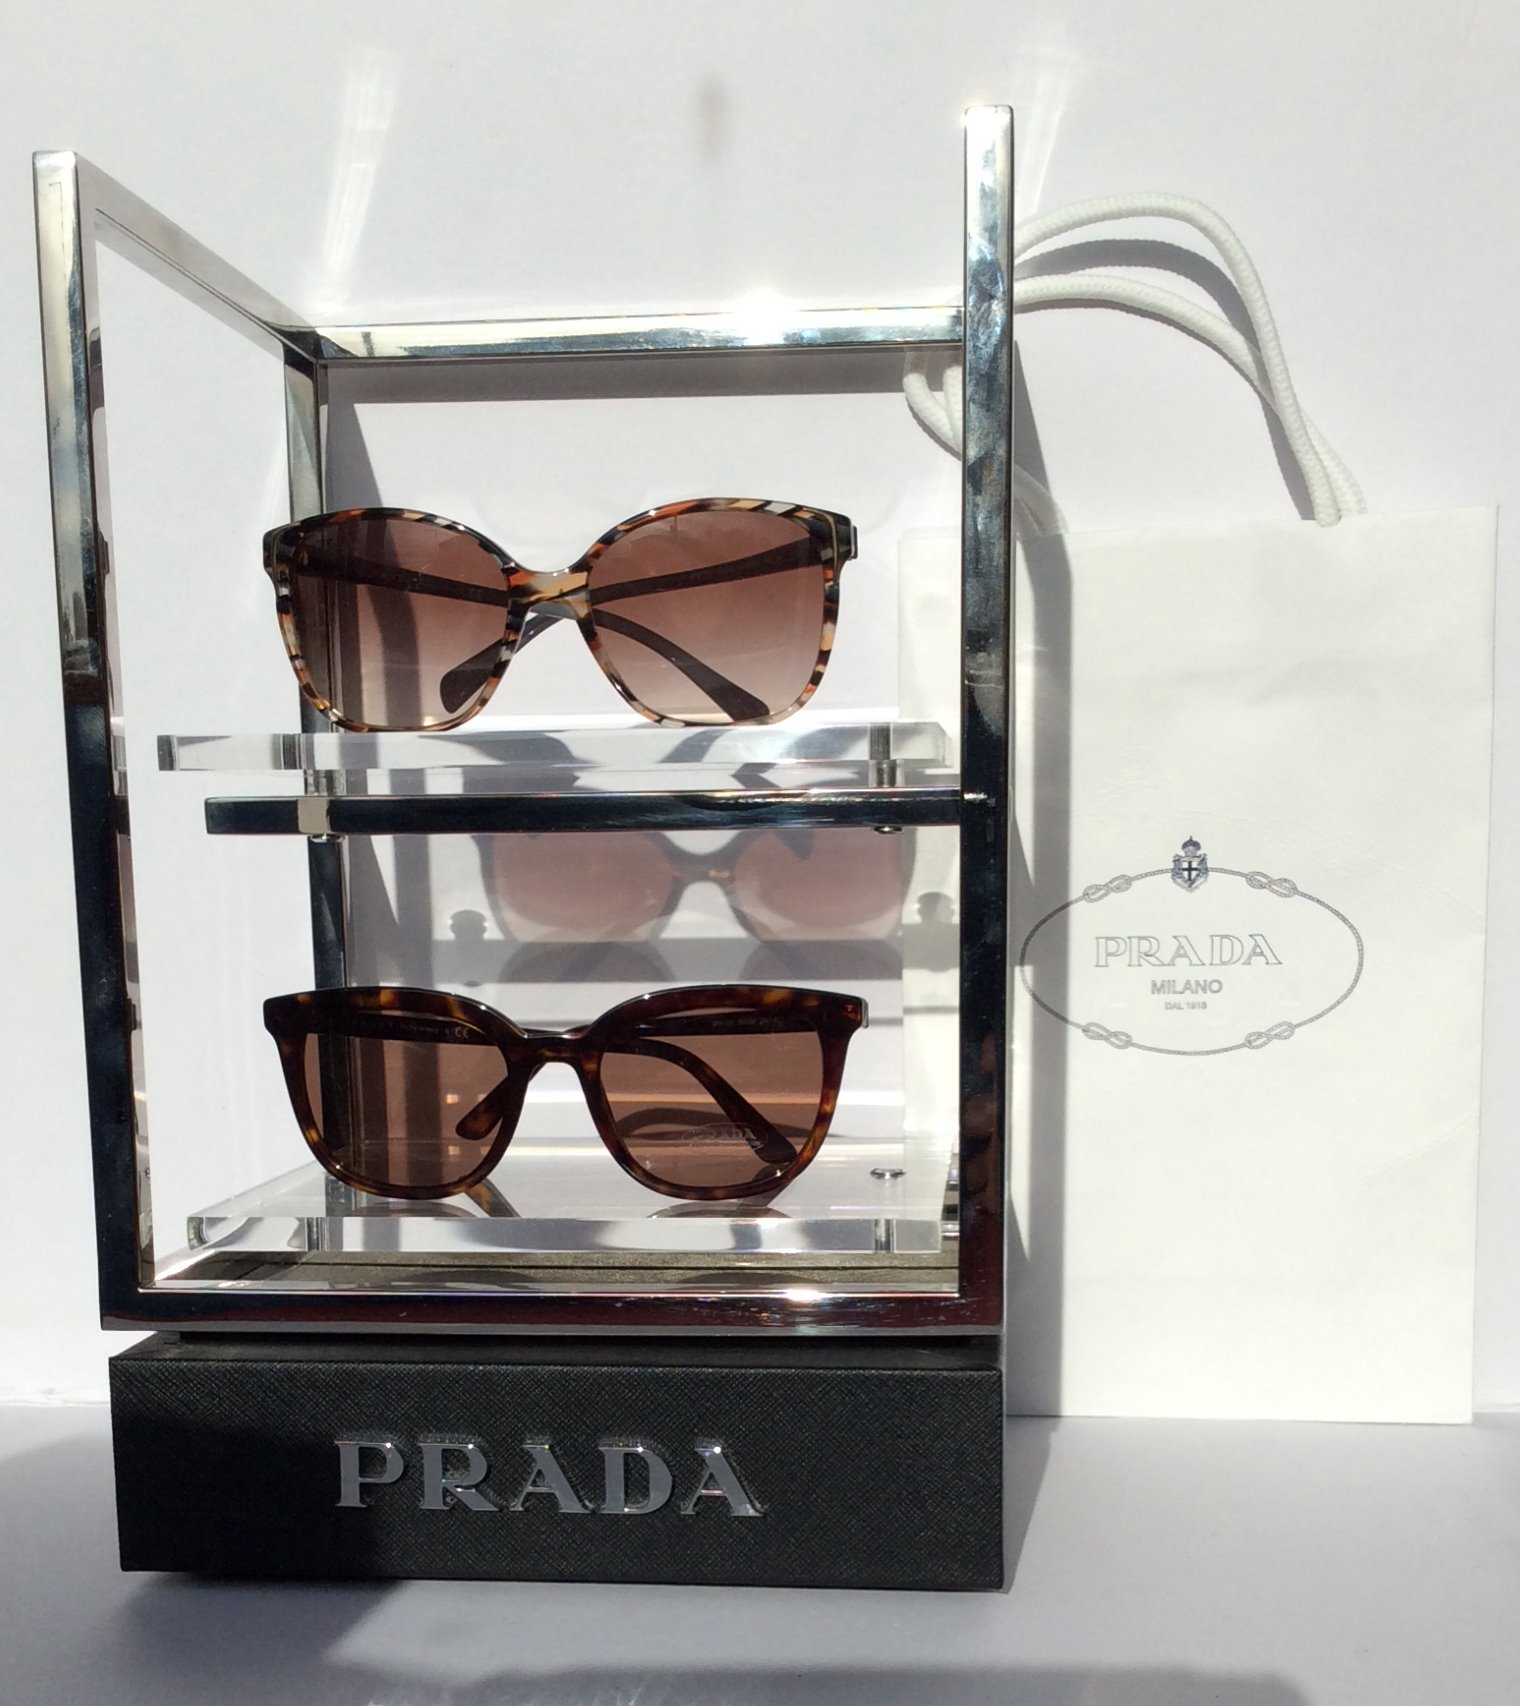 prada%20fab%20sunnies_edited